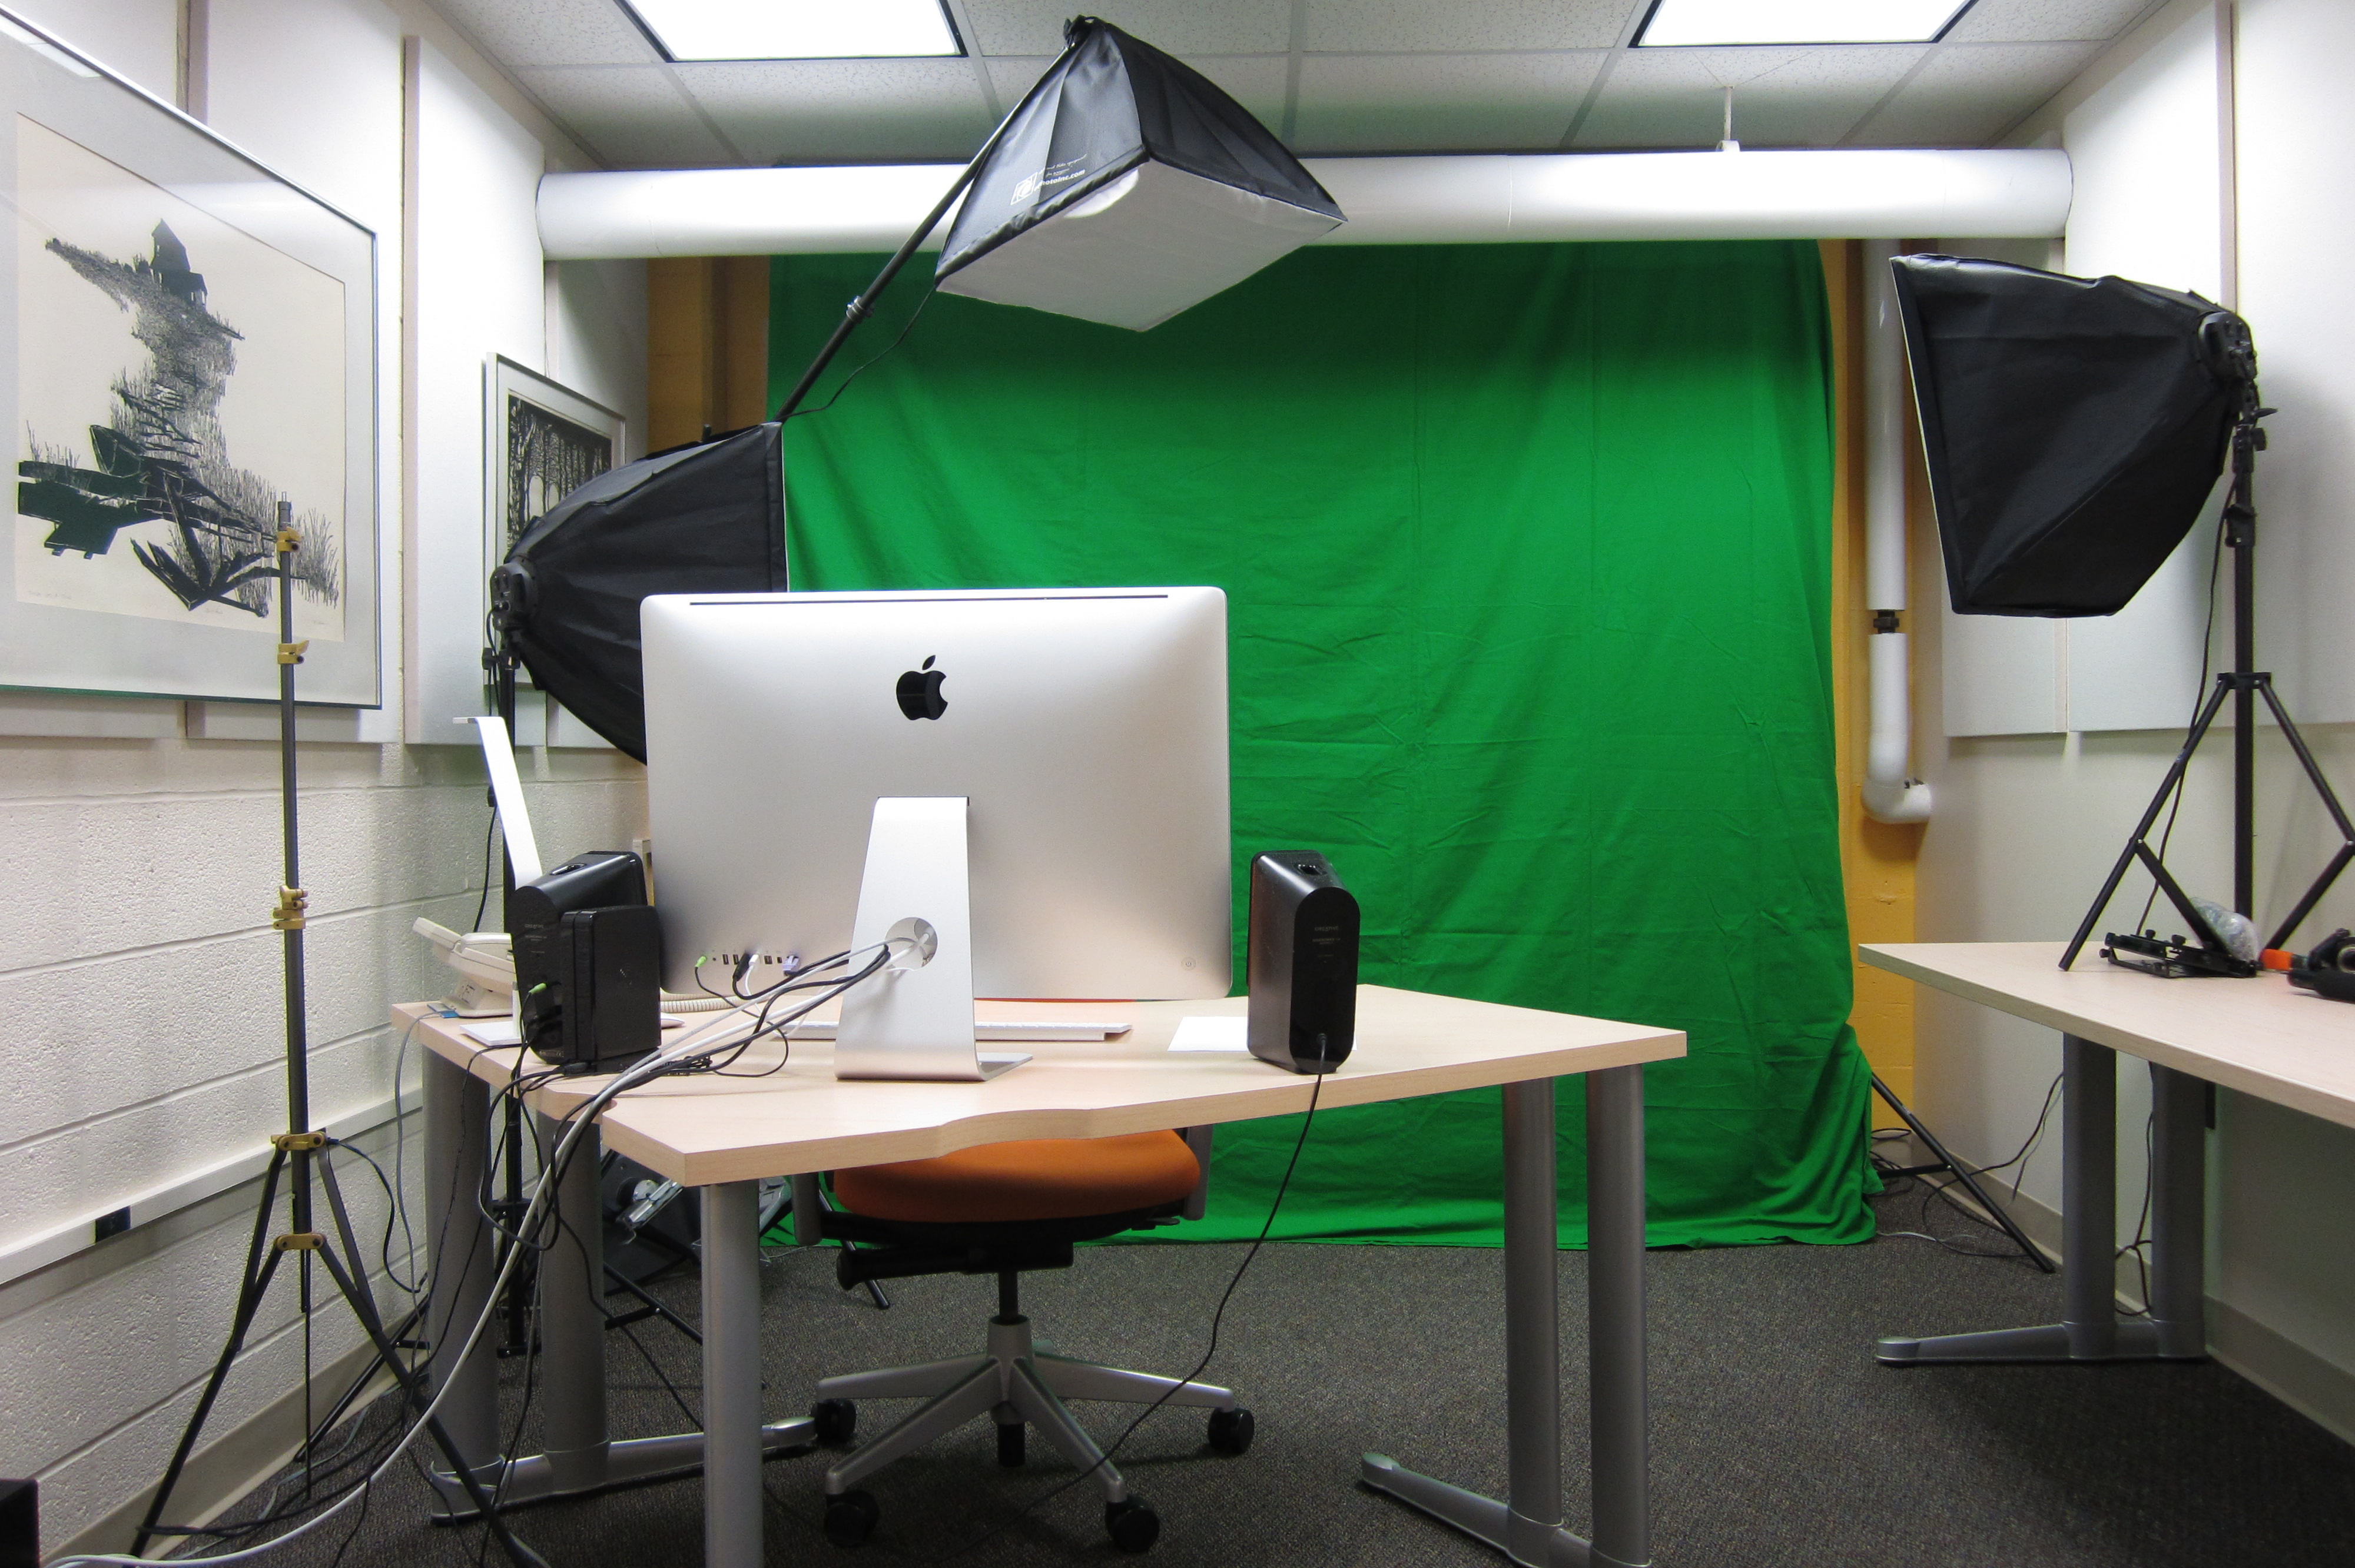 video production room with greenscreen